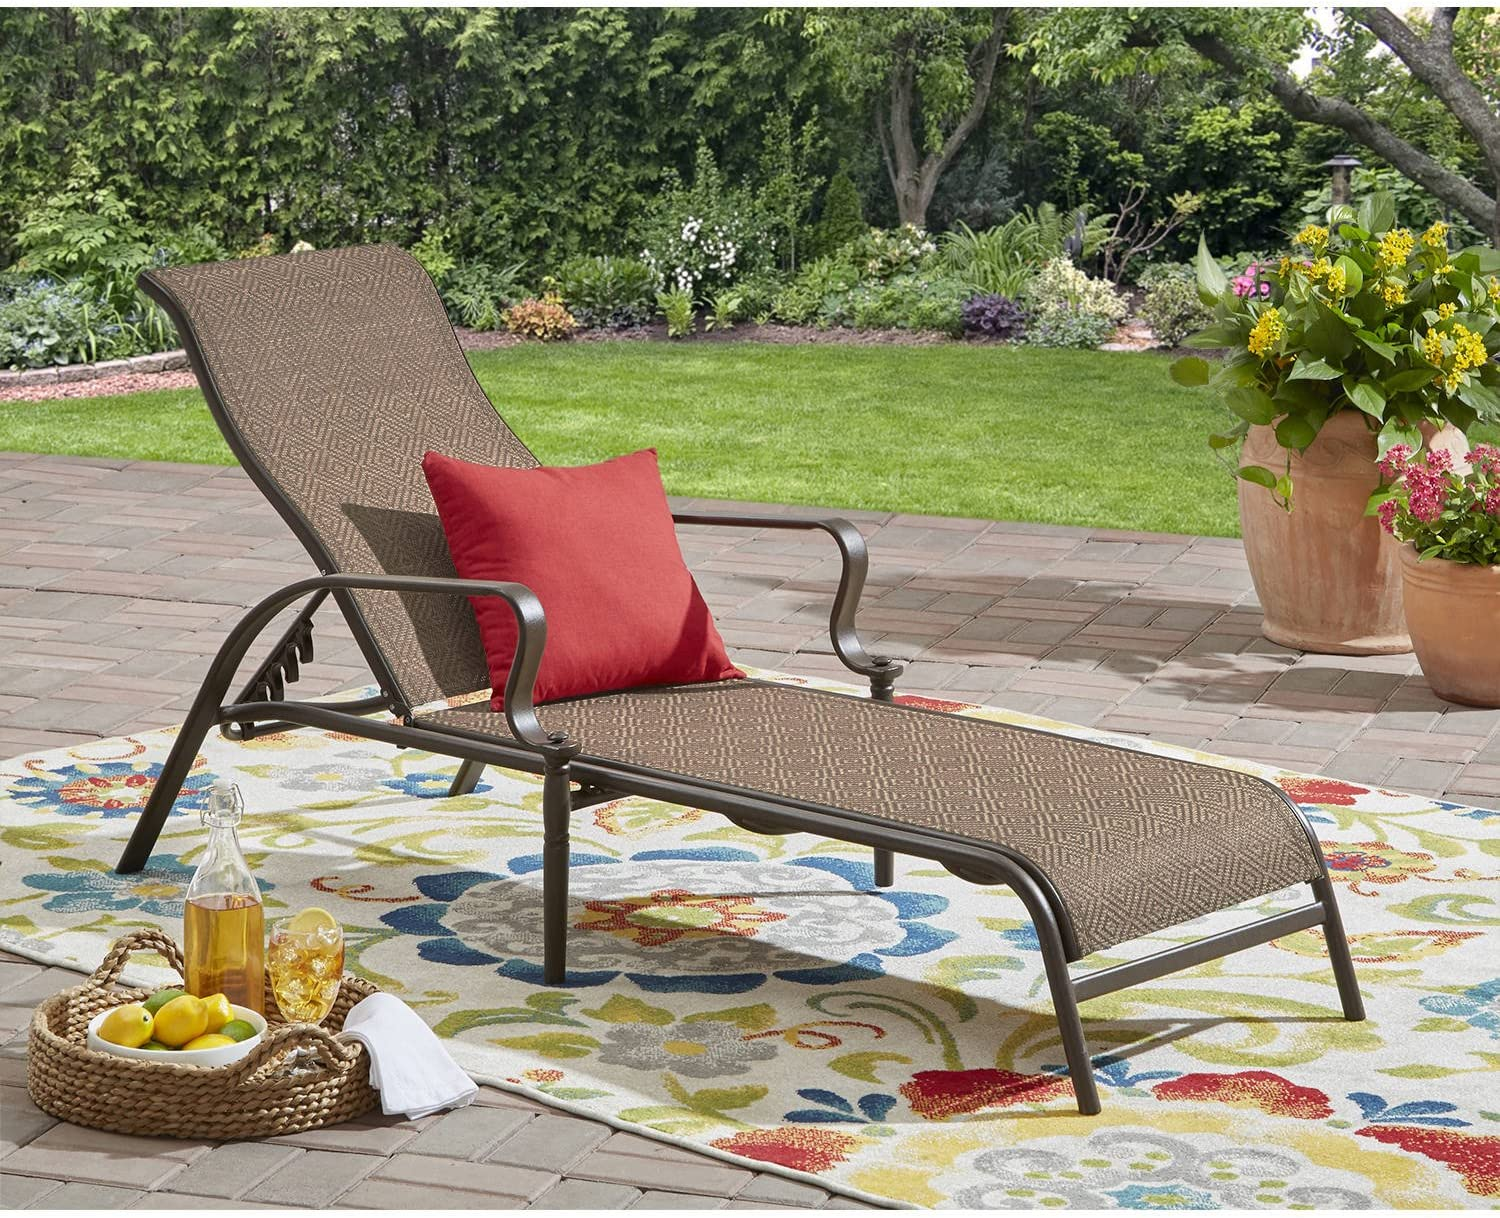 Mainstay Wesley Creek Sling Chaise Lounge (Brown)